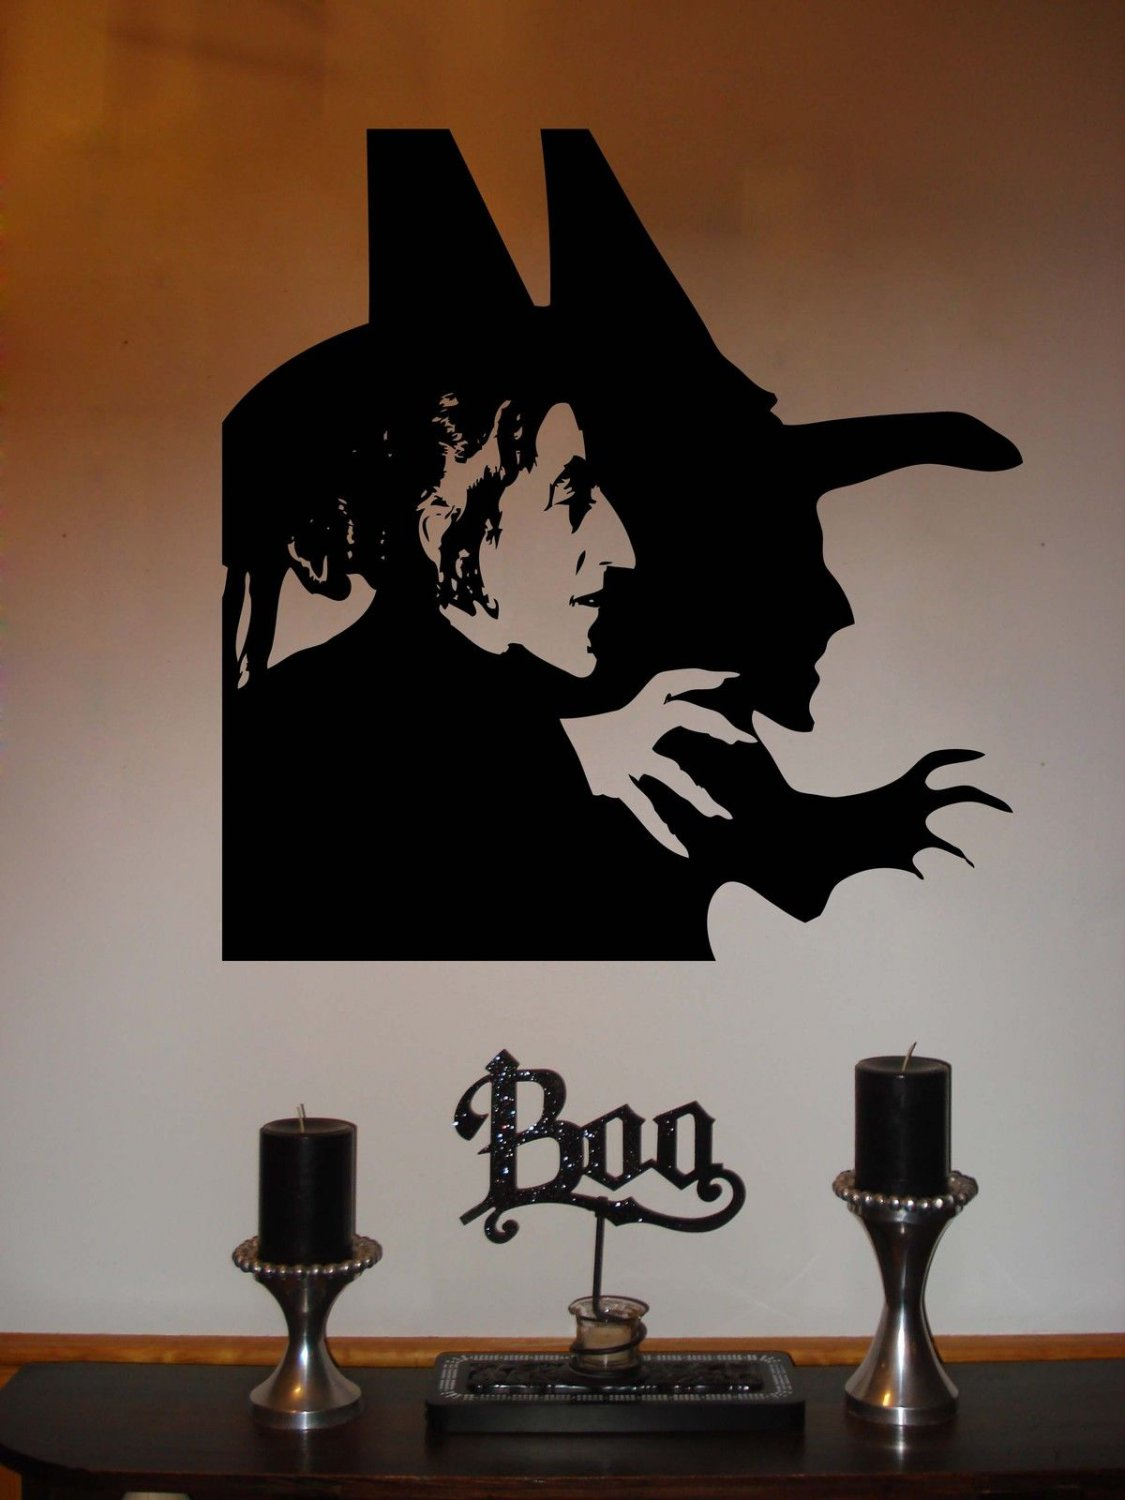 """Wizard of Oz Wicked Witch of the West Vinyl Wall Sticker Decal 5.75""""h x 6""""w"""